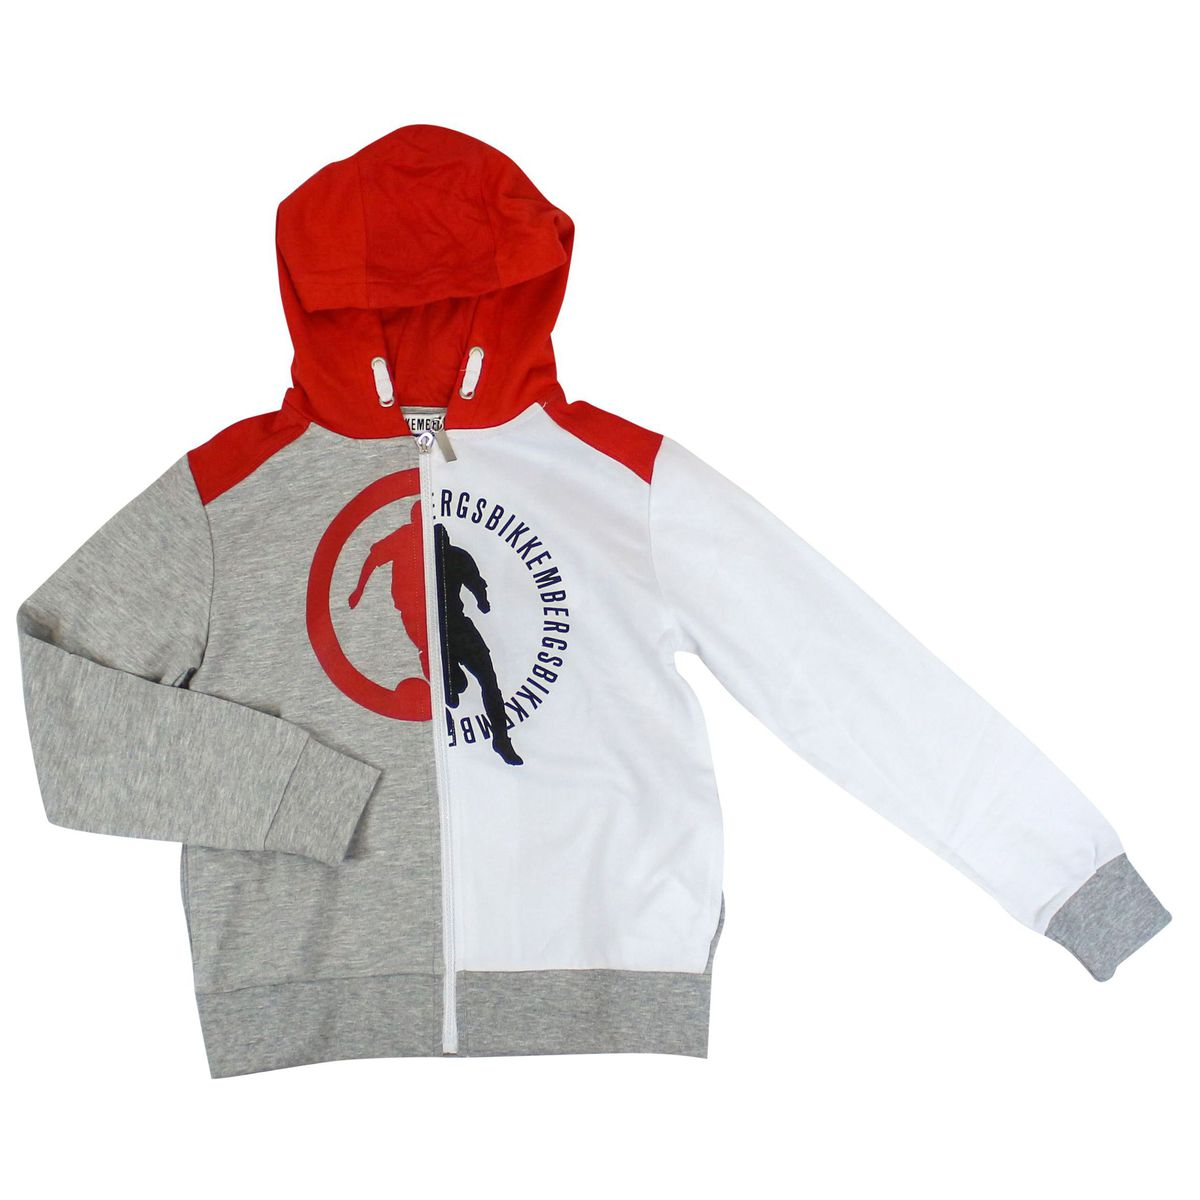 Sweatshirt with zip and hood White / gray Bikkembergs